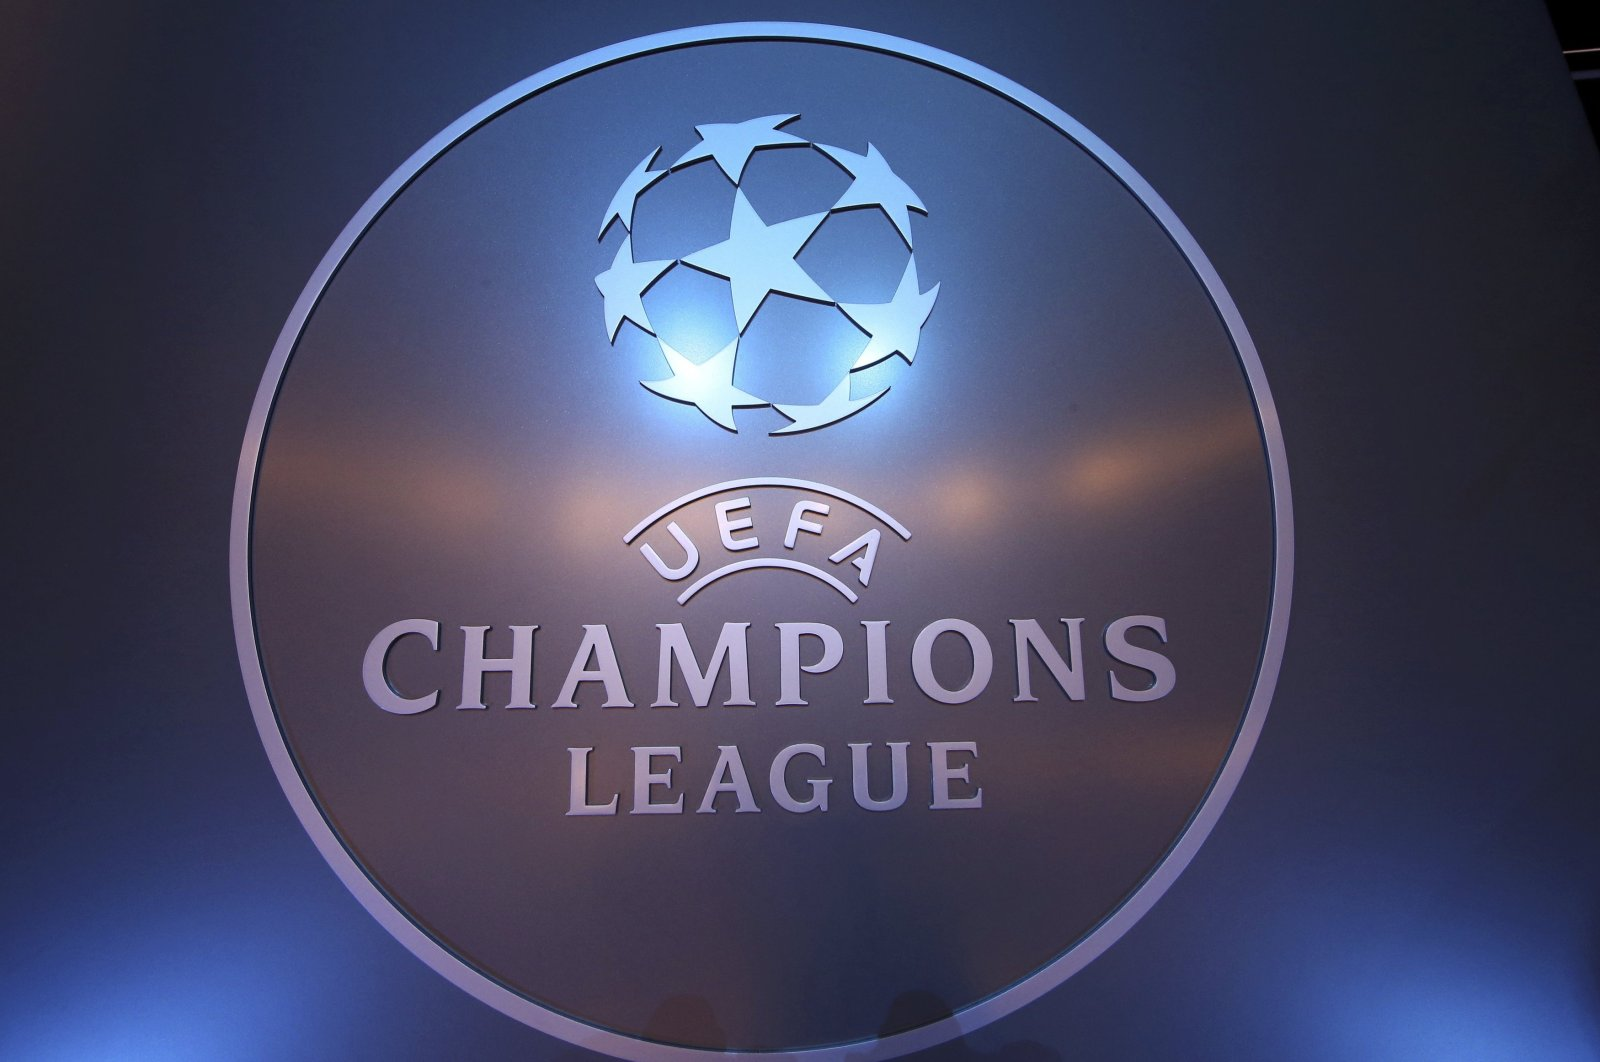 The UEFA logo is seen before the draw ceremony for the 2016/2017 Champions League Cup soccer competition at Monaco's Grimaldi Forum in Monaco Aug. 25, 2016. (Reuters File Photo)